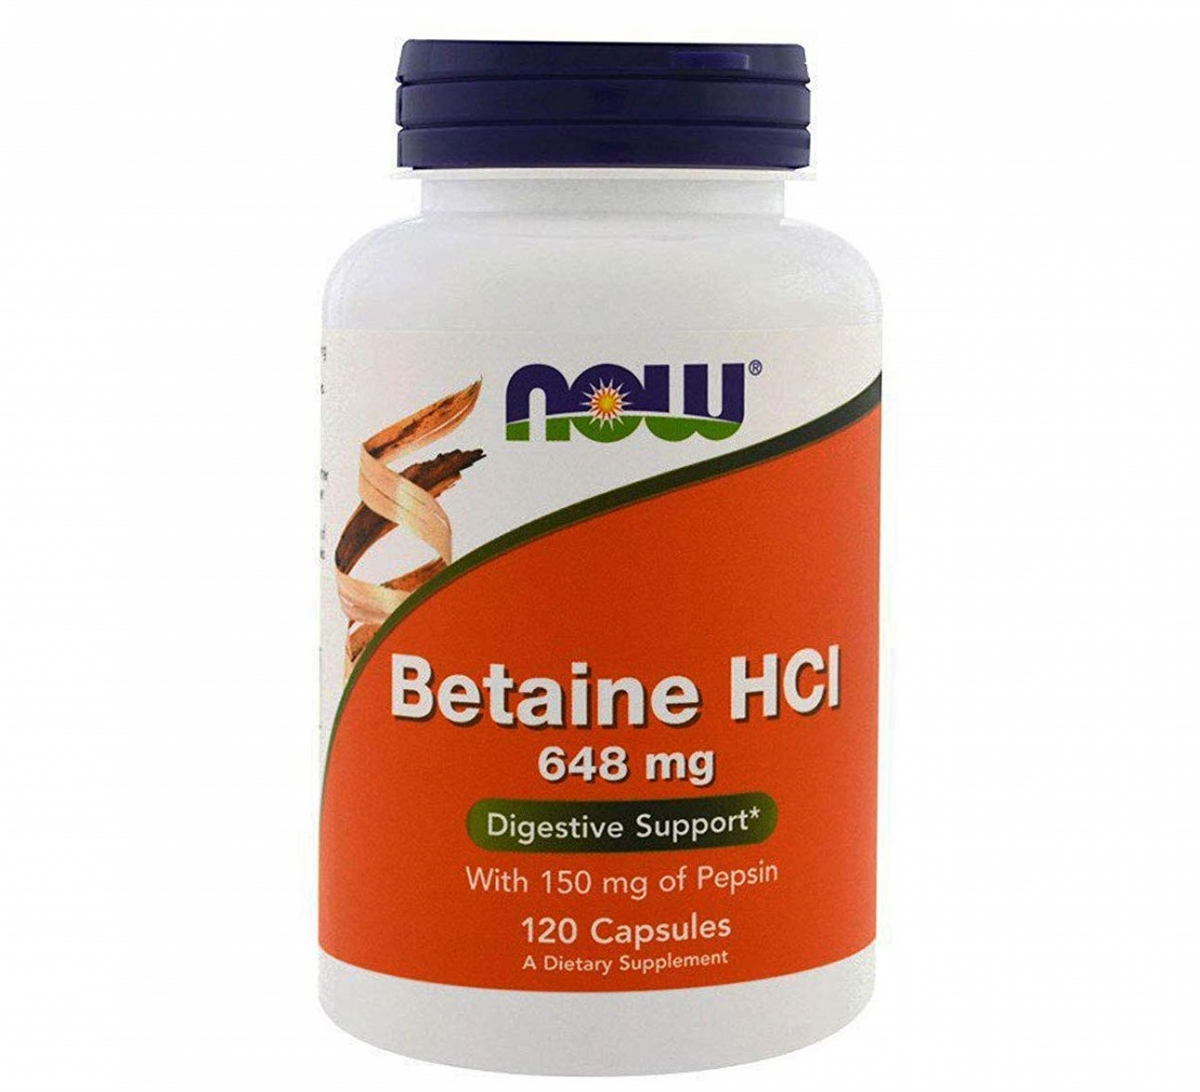 NOW Betaine Hcl 648mg 120caps